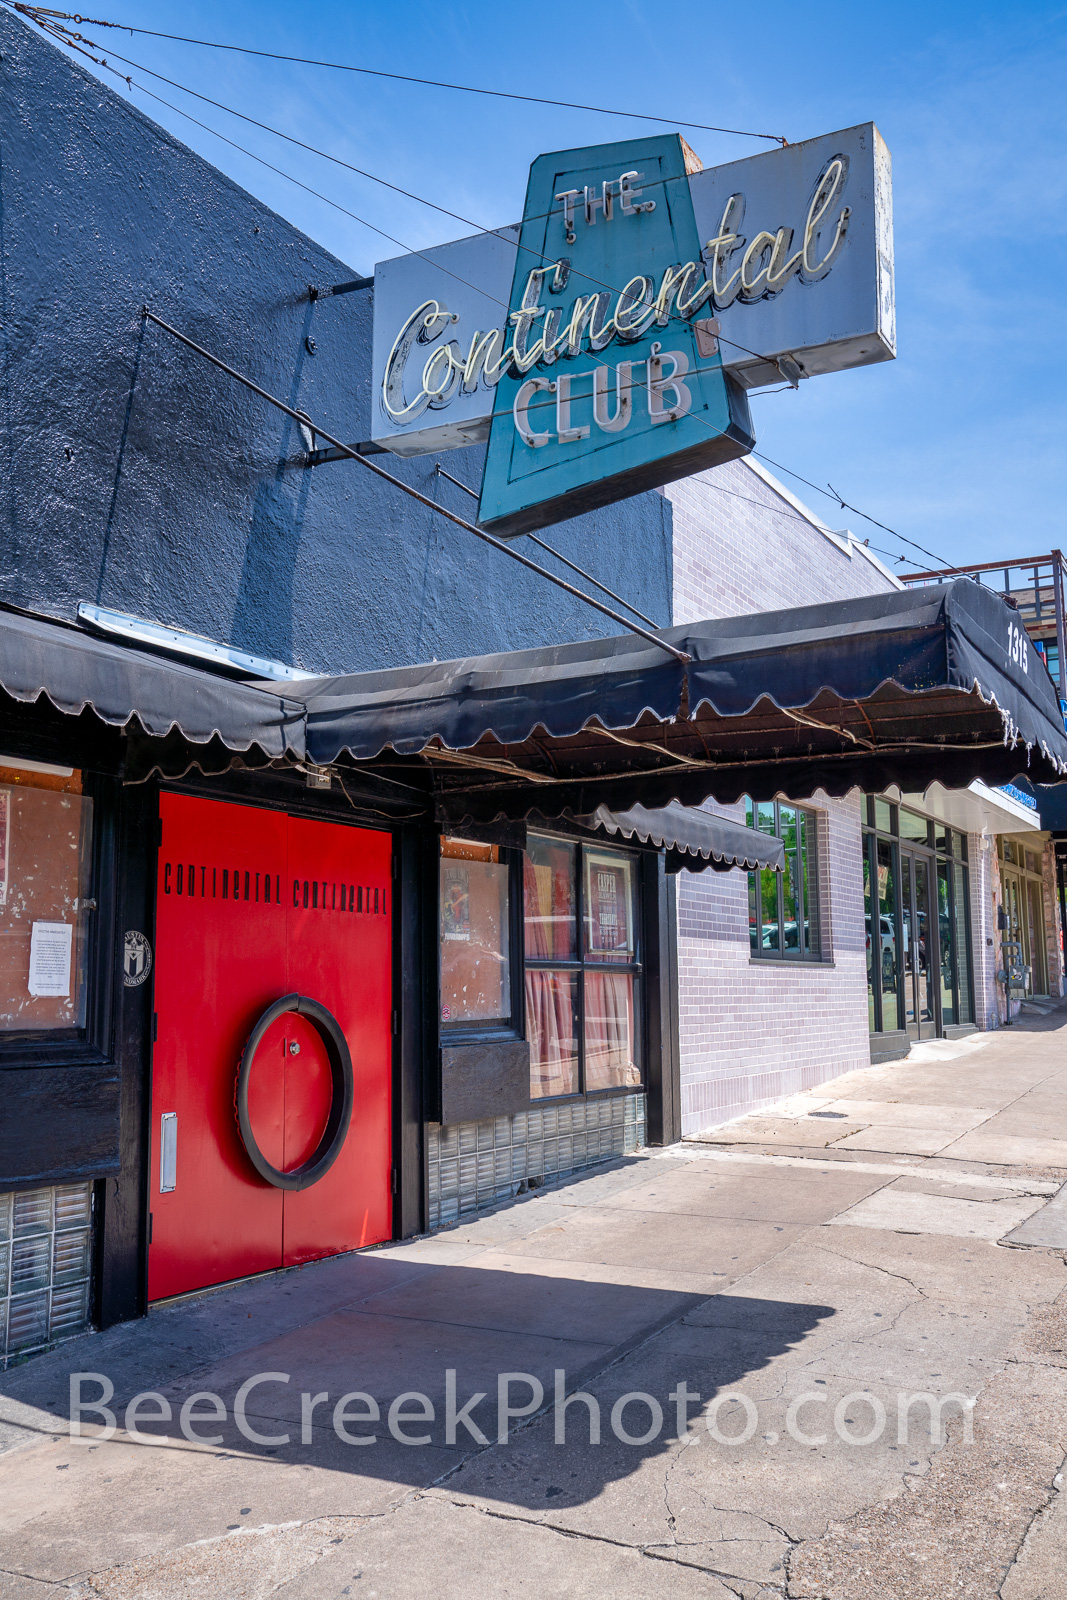 Continental Club Austin Vertical 2 - This is a view of the iconic Continental Club in downtown Austin on Congress in South Congress...